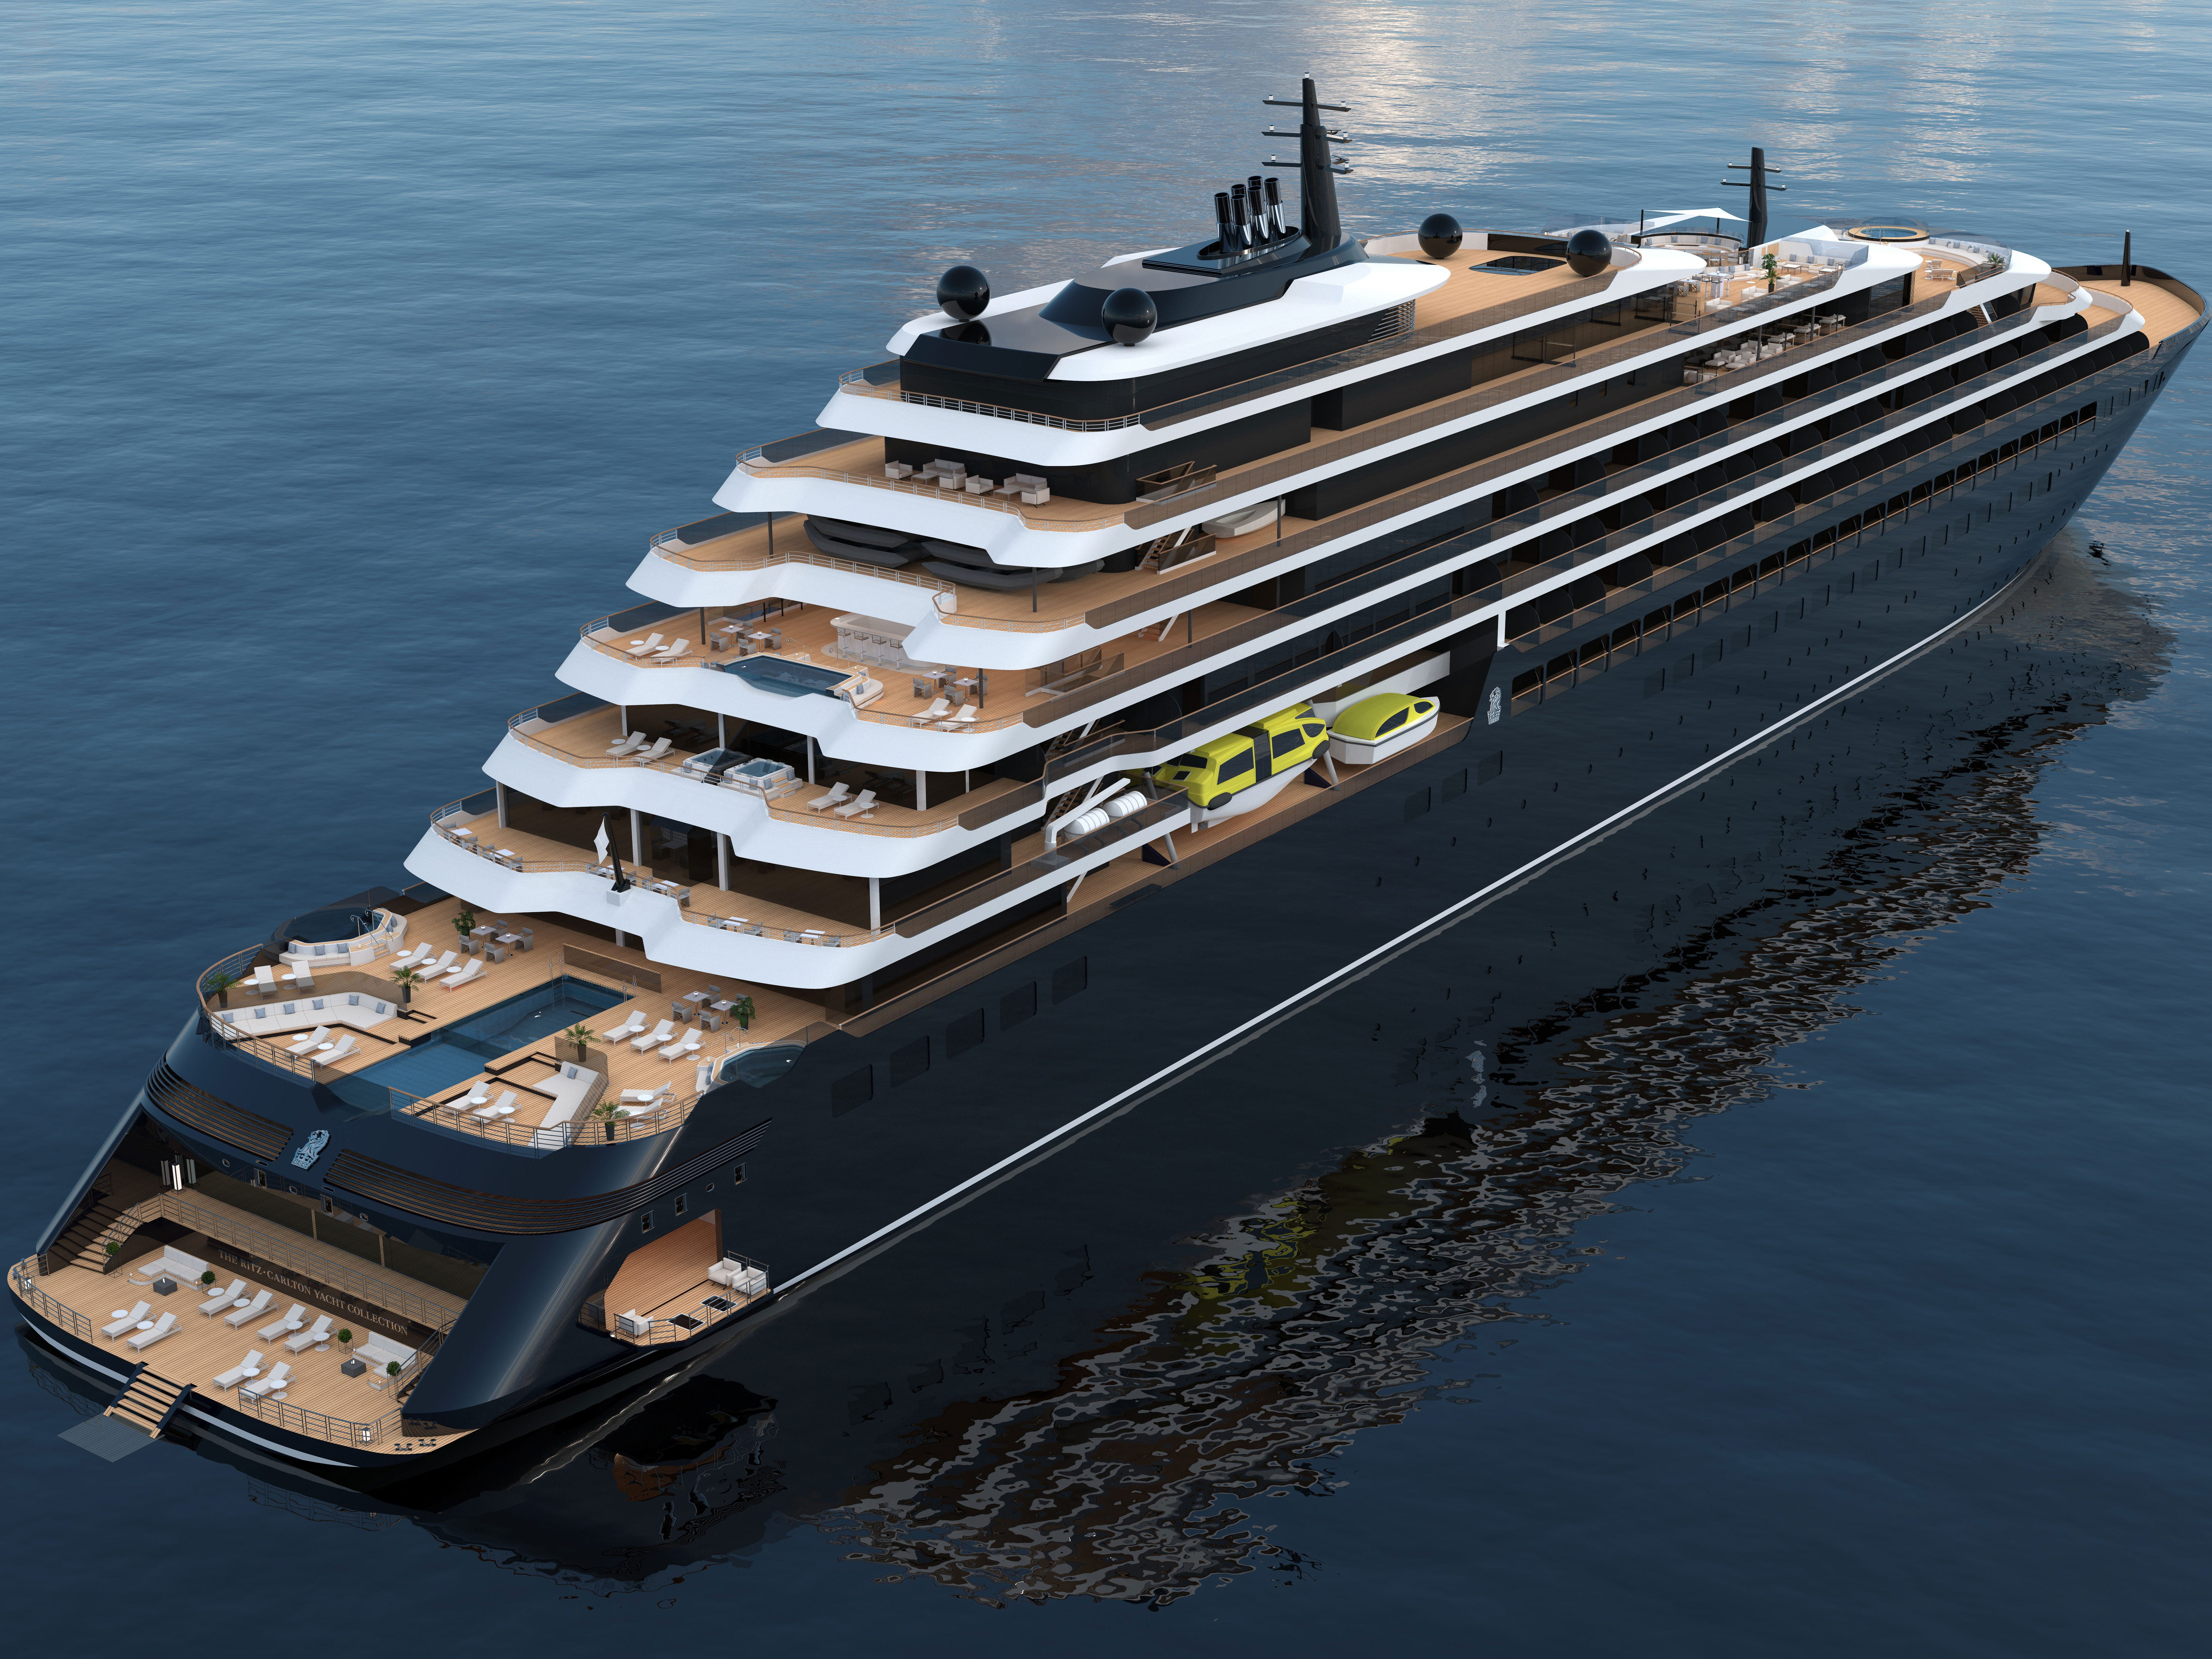 Hotel chain Ritz-Carlton is developing a cruise line that will debut in 2019. It's first vessel will carry 298 passengers.